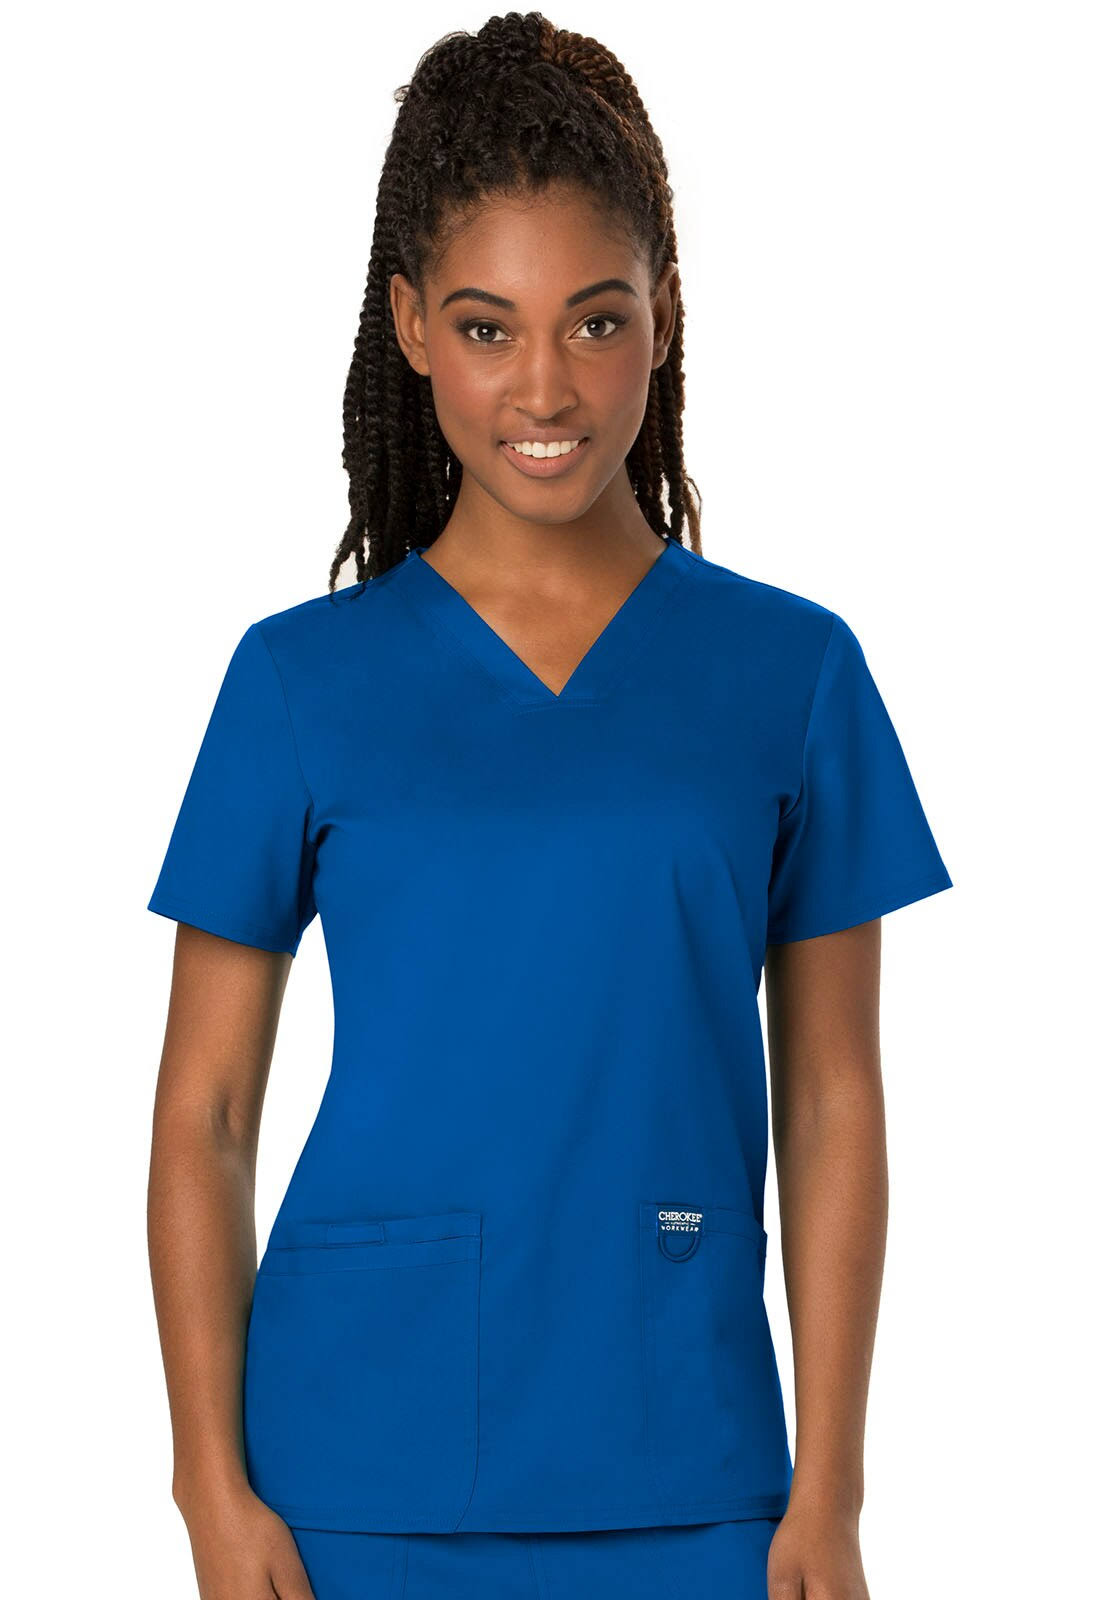 Cherokee Workwear Revolution V-Neck Scrub Top - XS - Royal